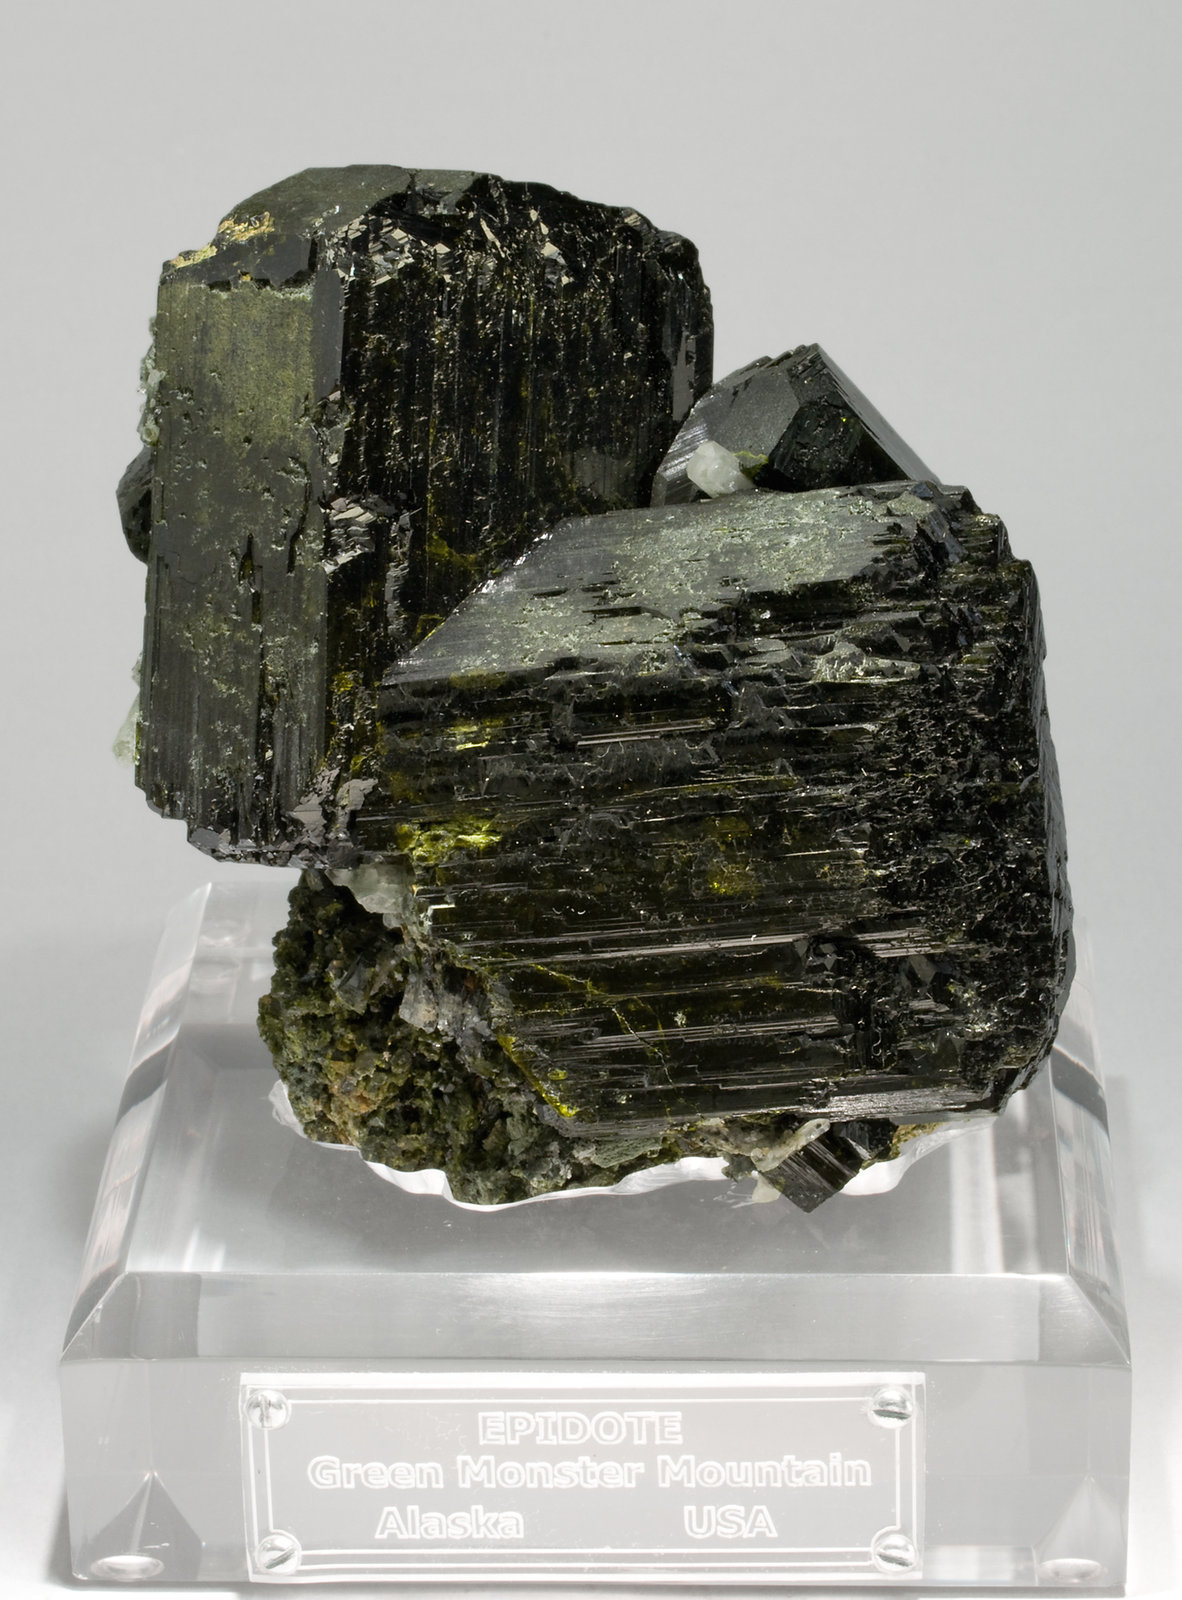 specimens/s_imagesT8/Epidote-TB47T8f.jpg